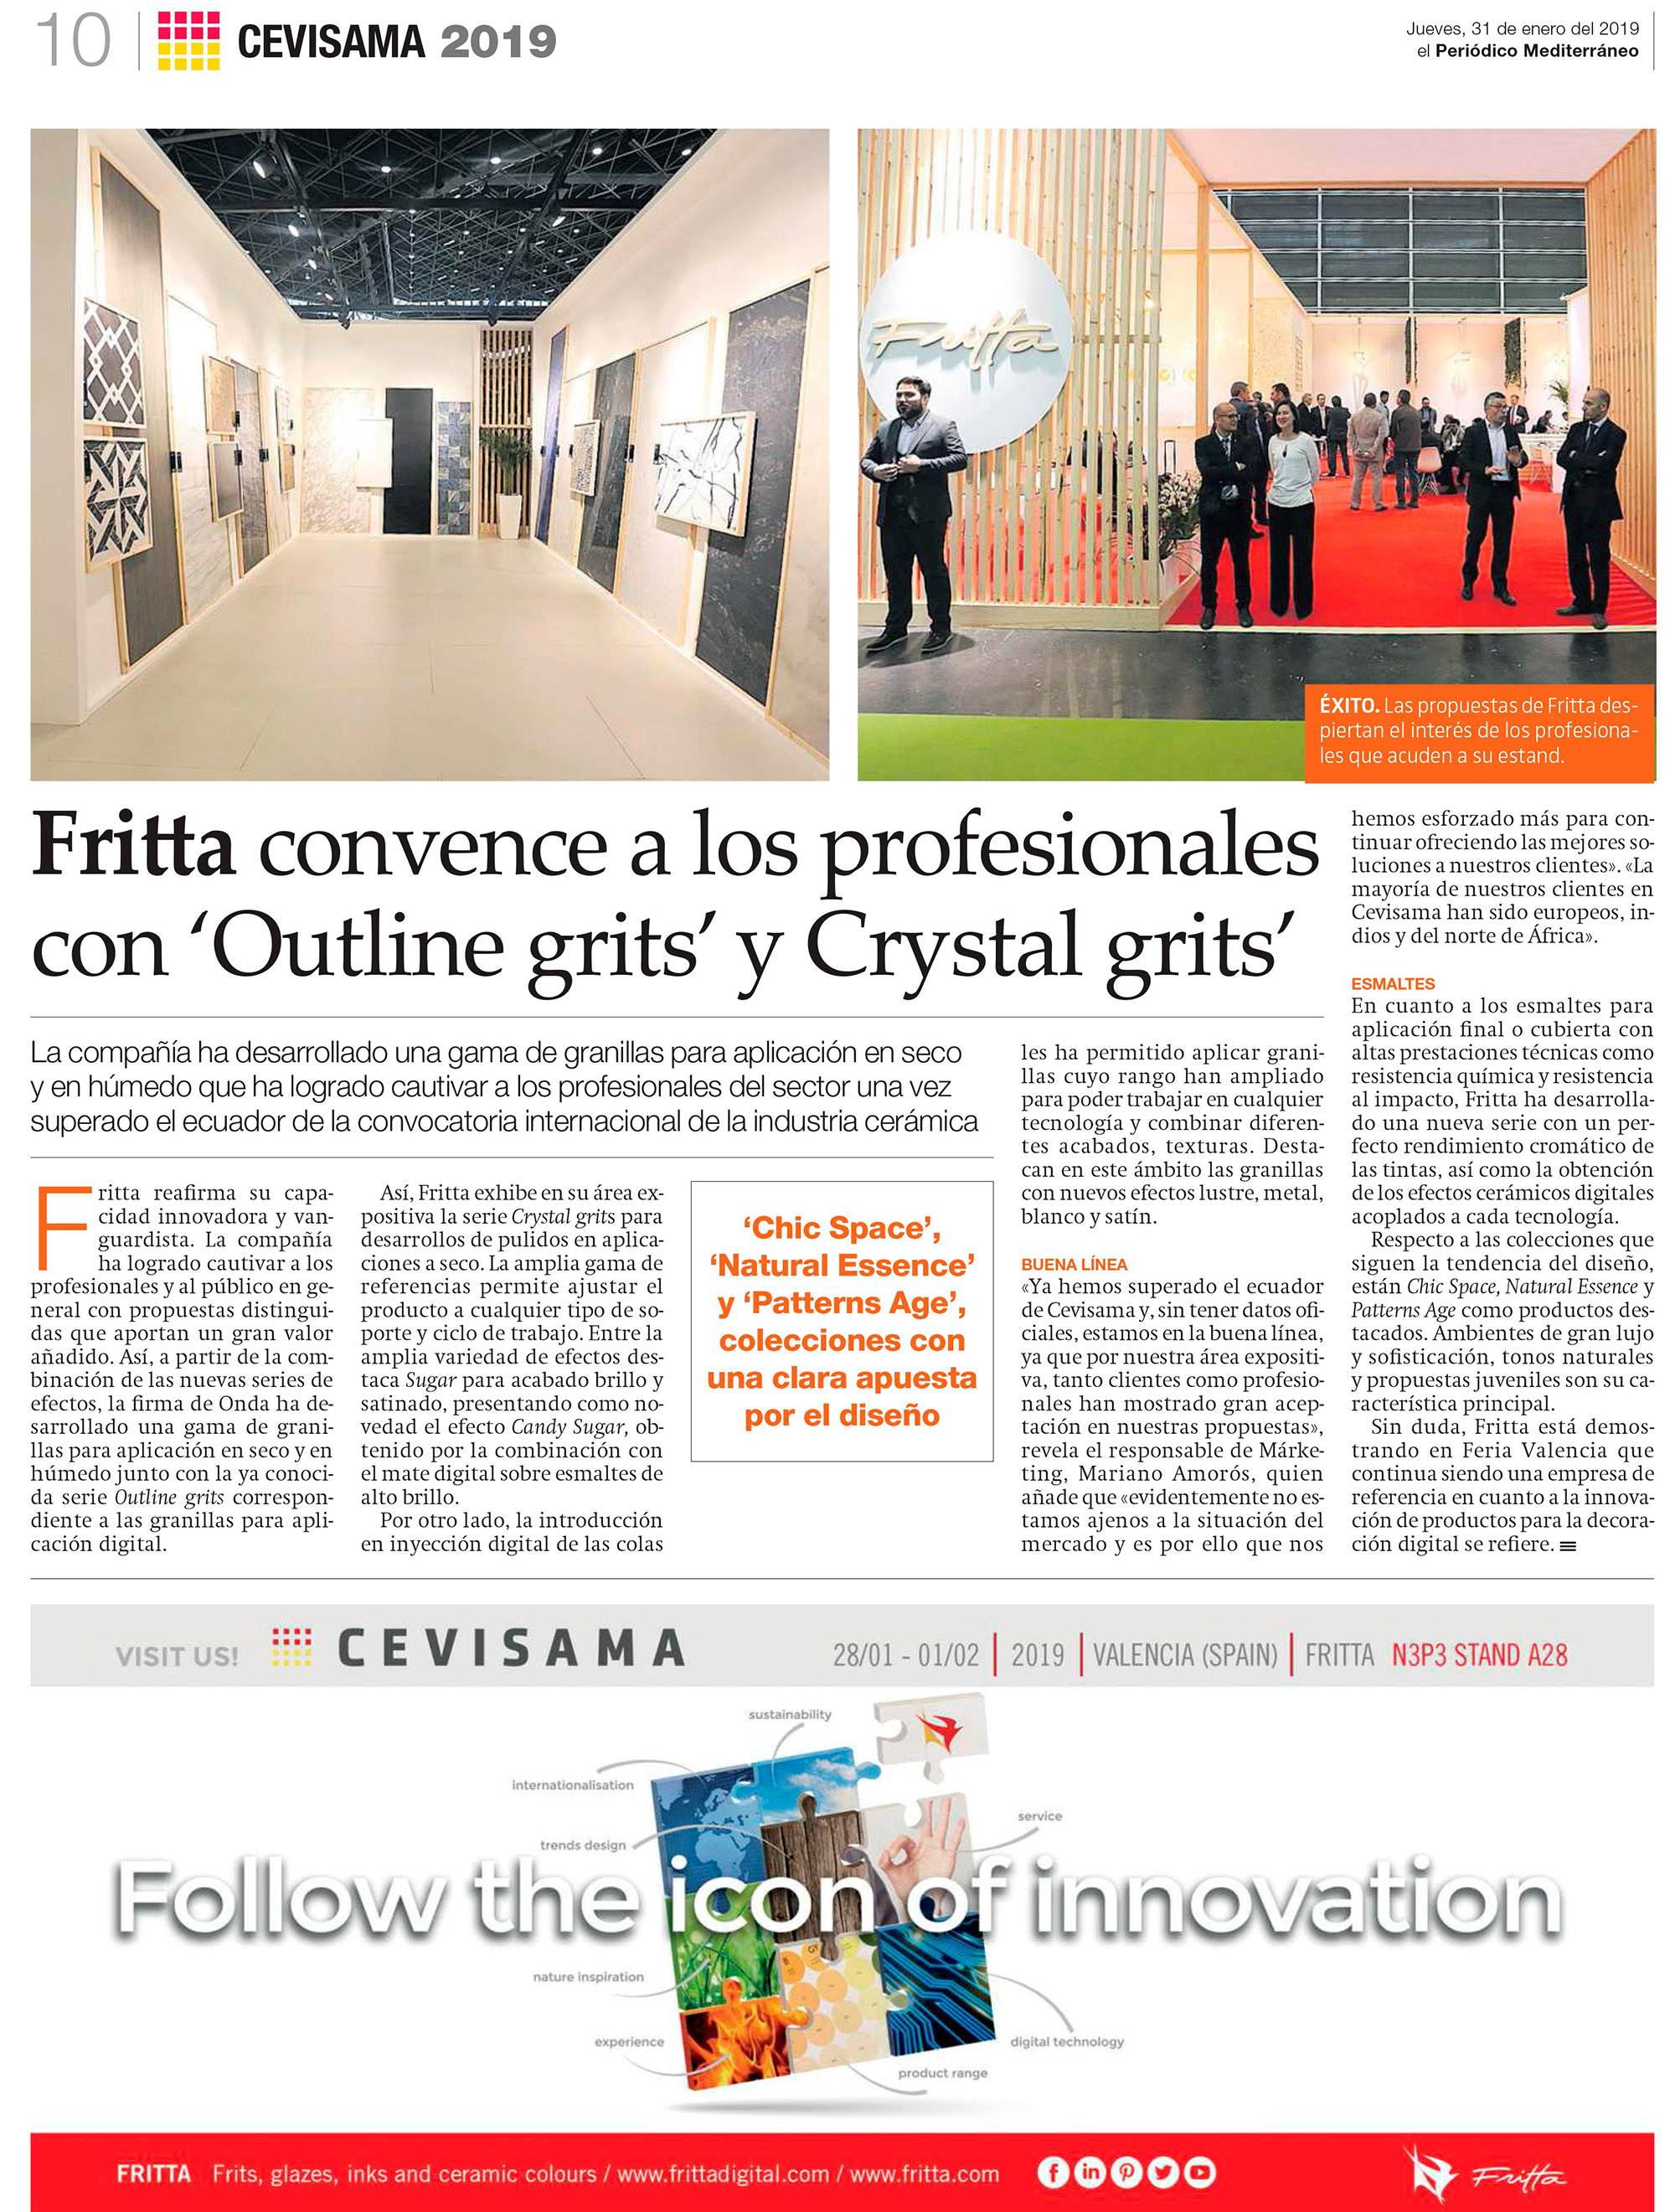 noticia fritta convence a profesionales